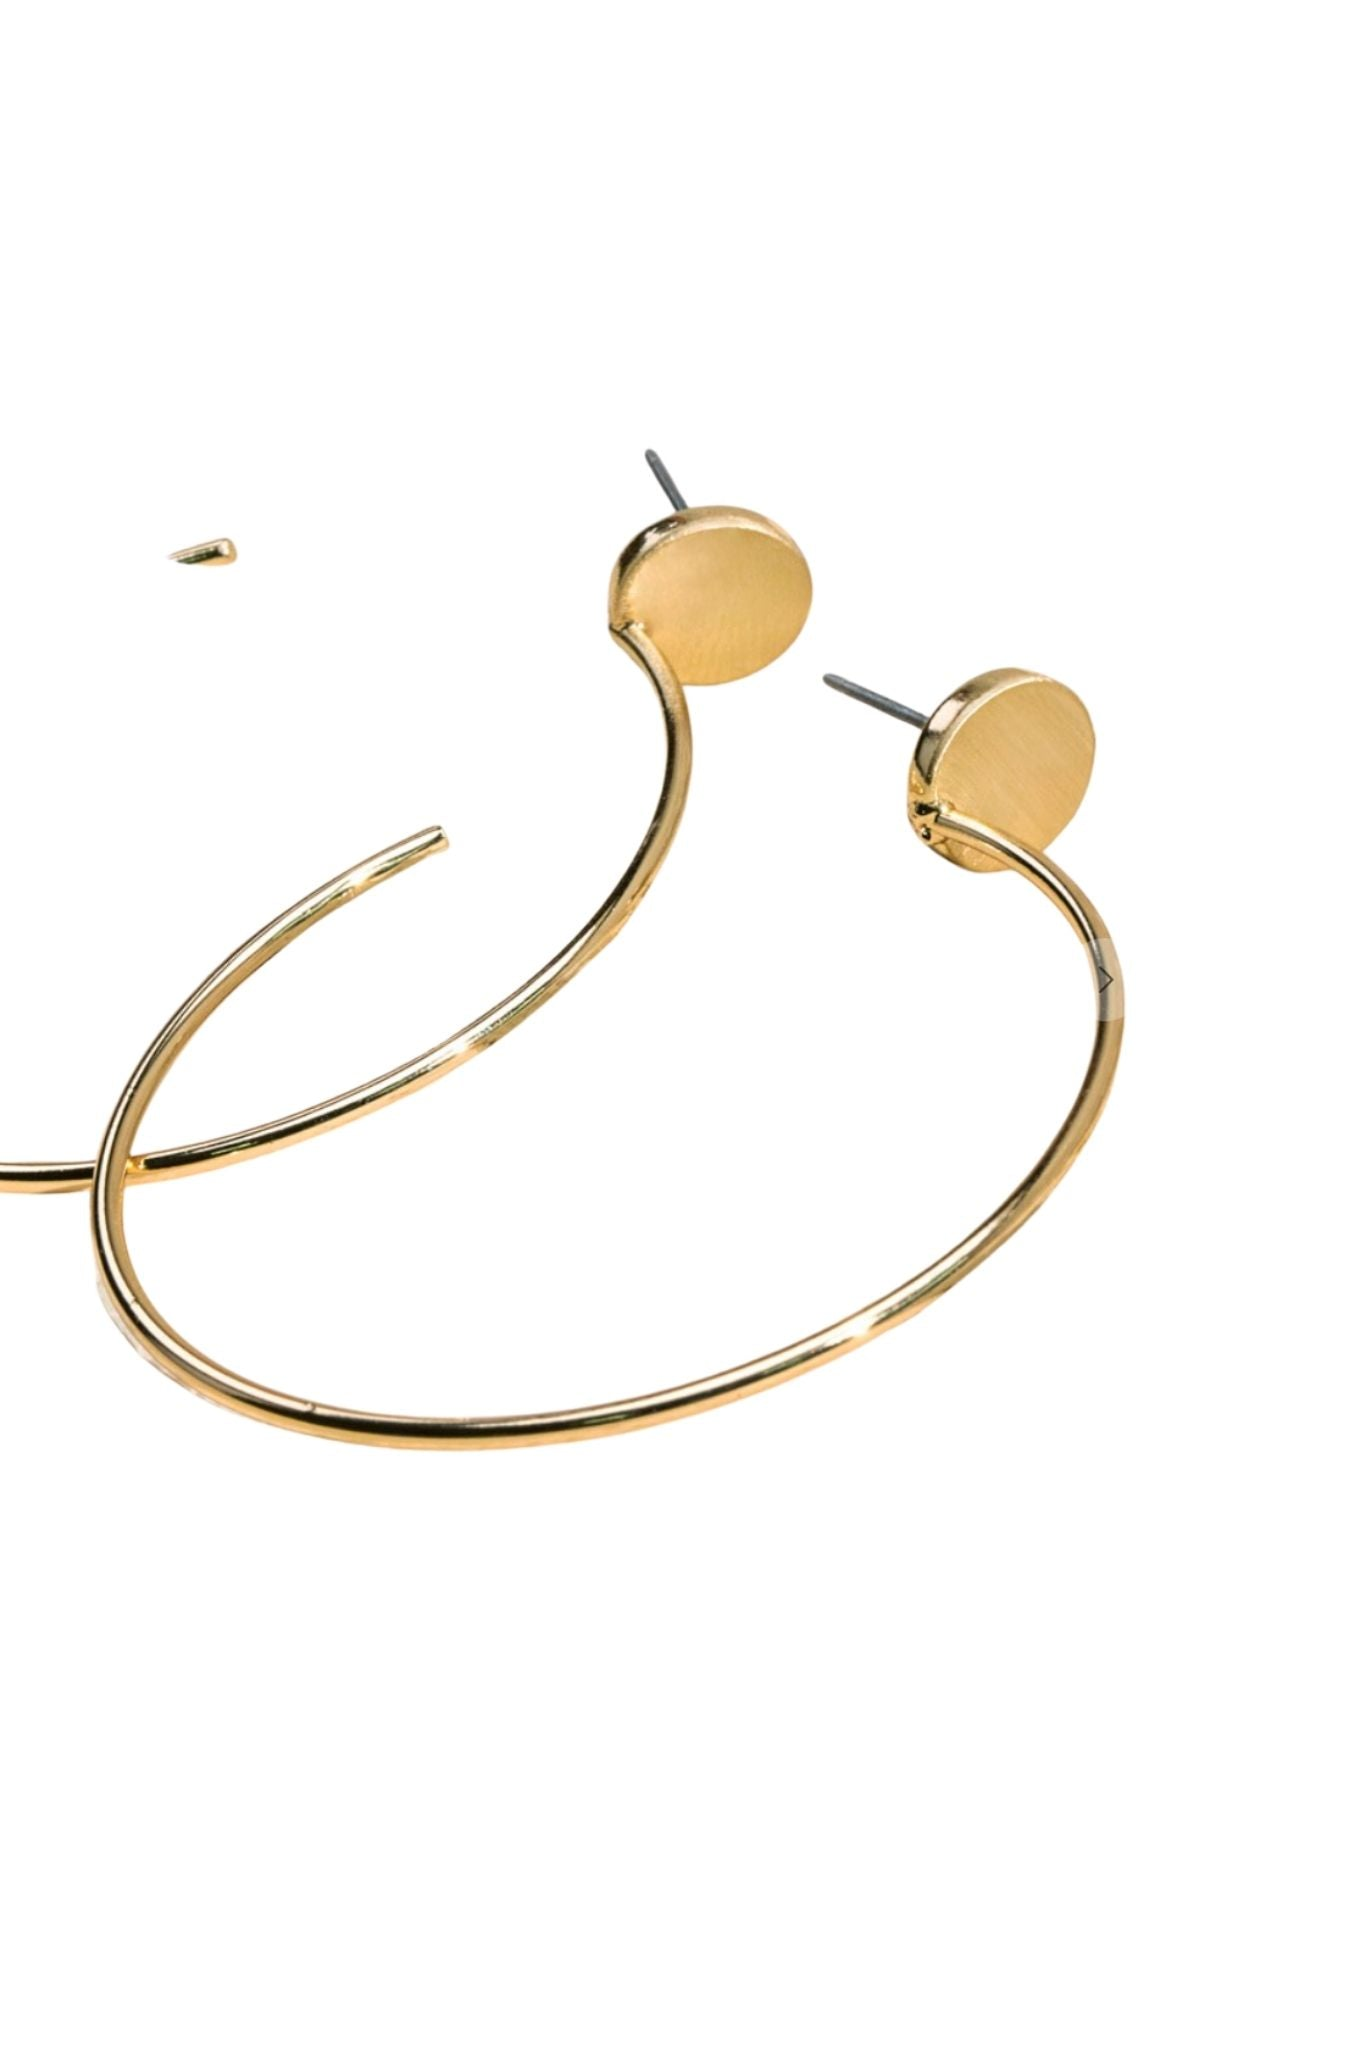 Gold Hoops with Round Post Earrings